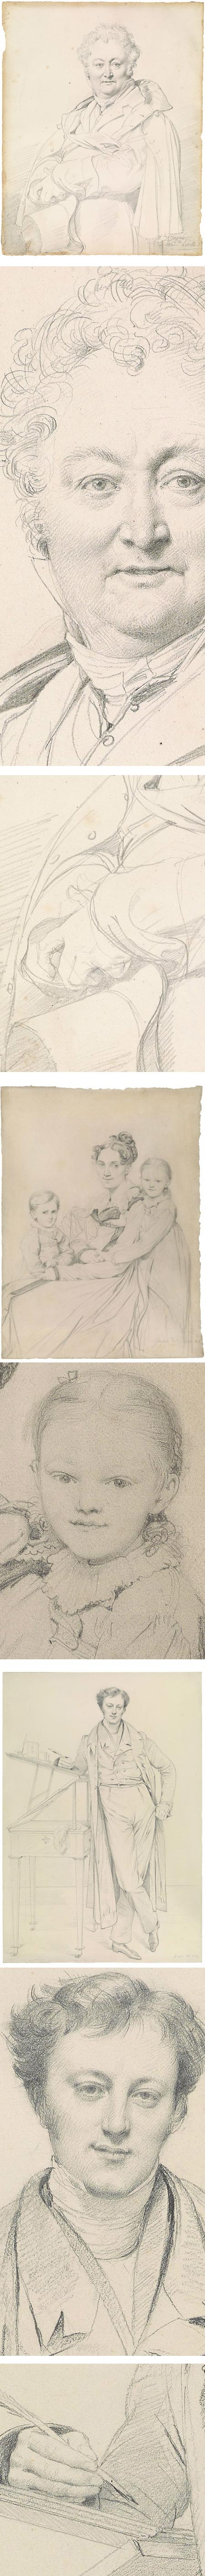 Ingres at the Morgan, graphite drwaings of ean-Auguste-Dominique Ingres